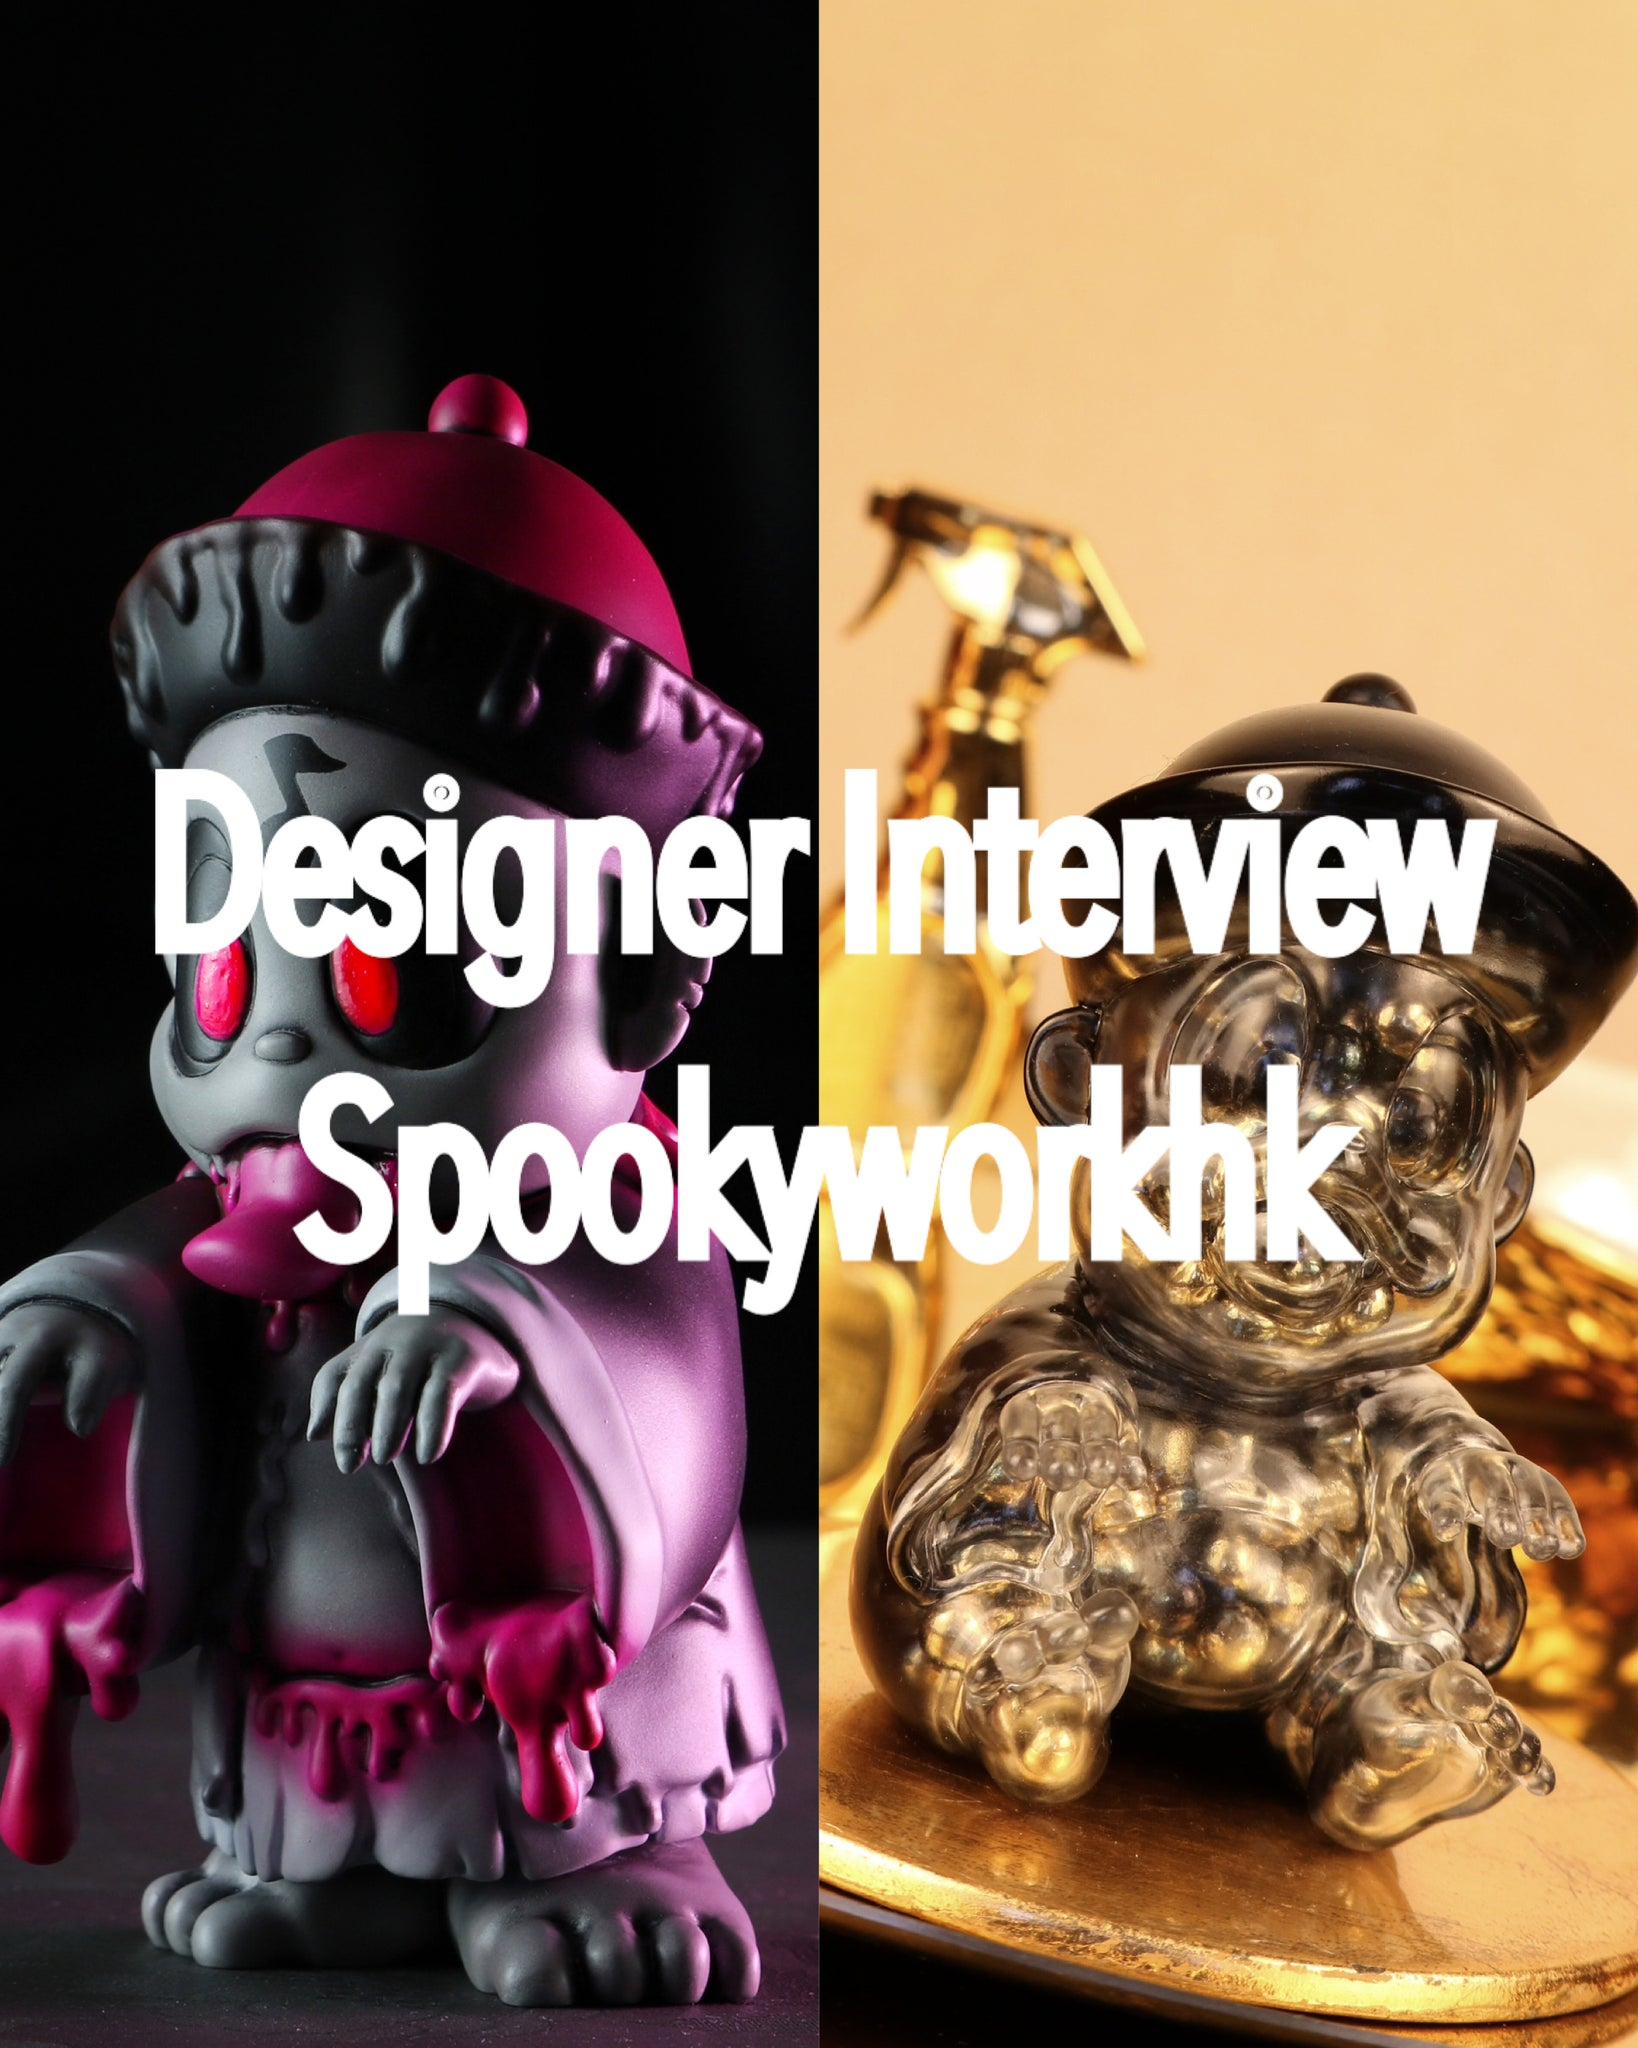 Designer Interview - Spookyworkhk